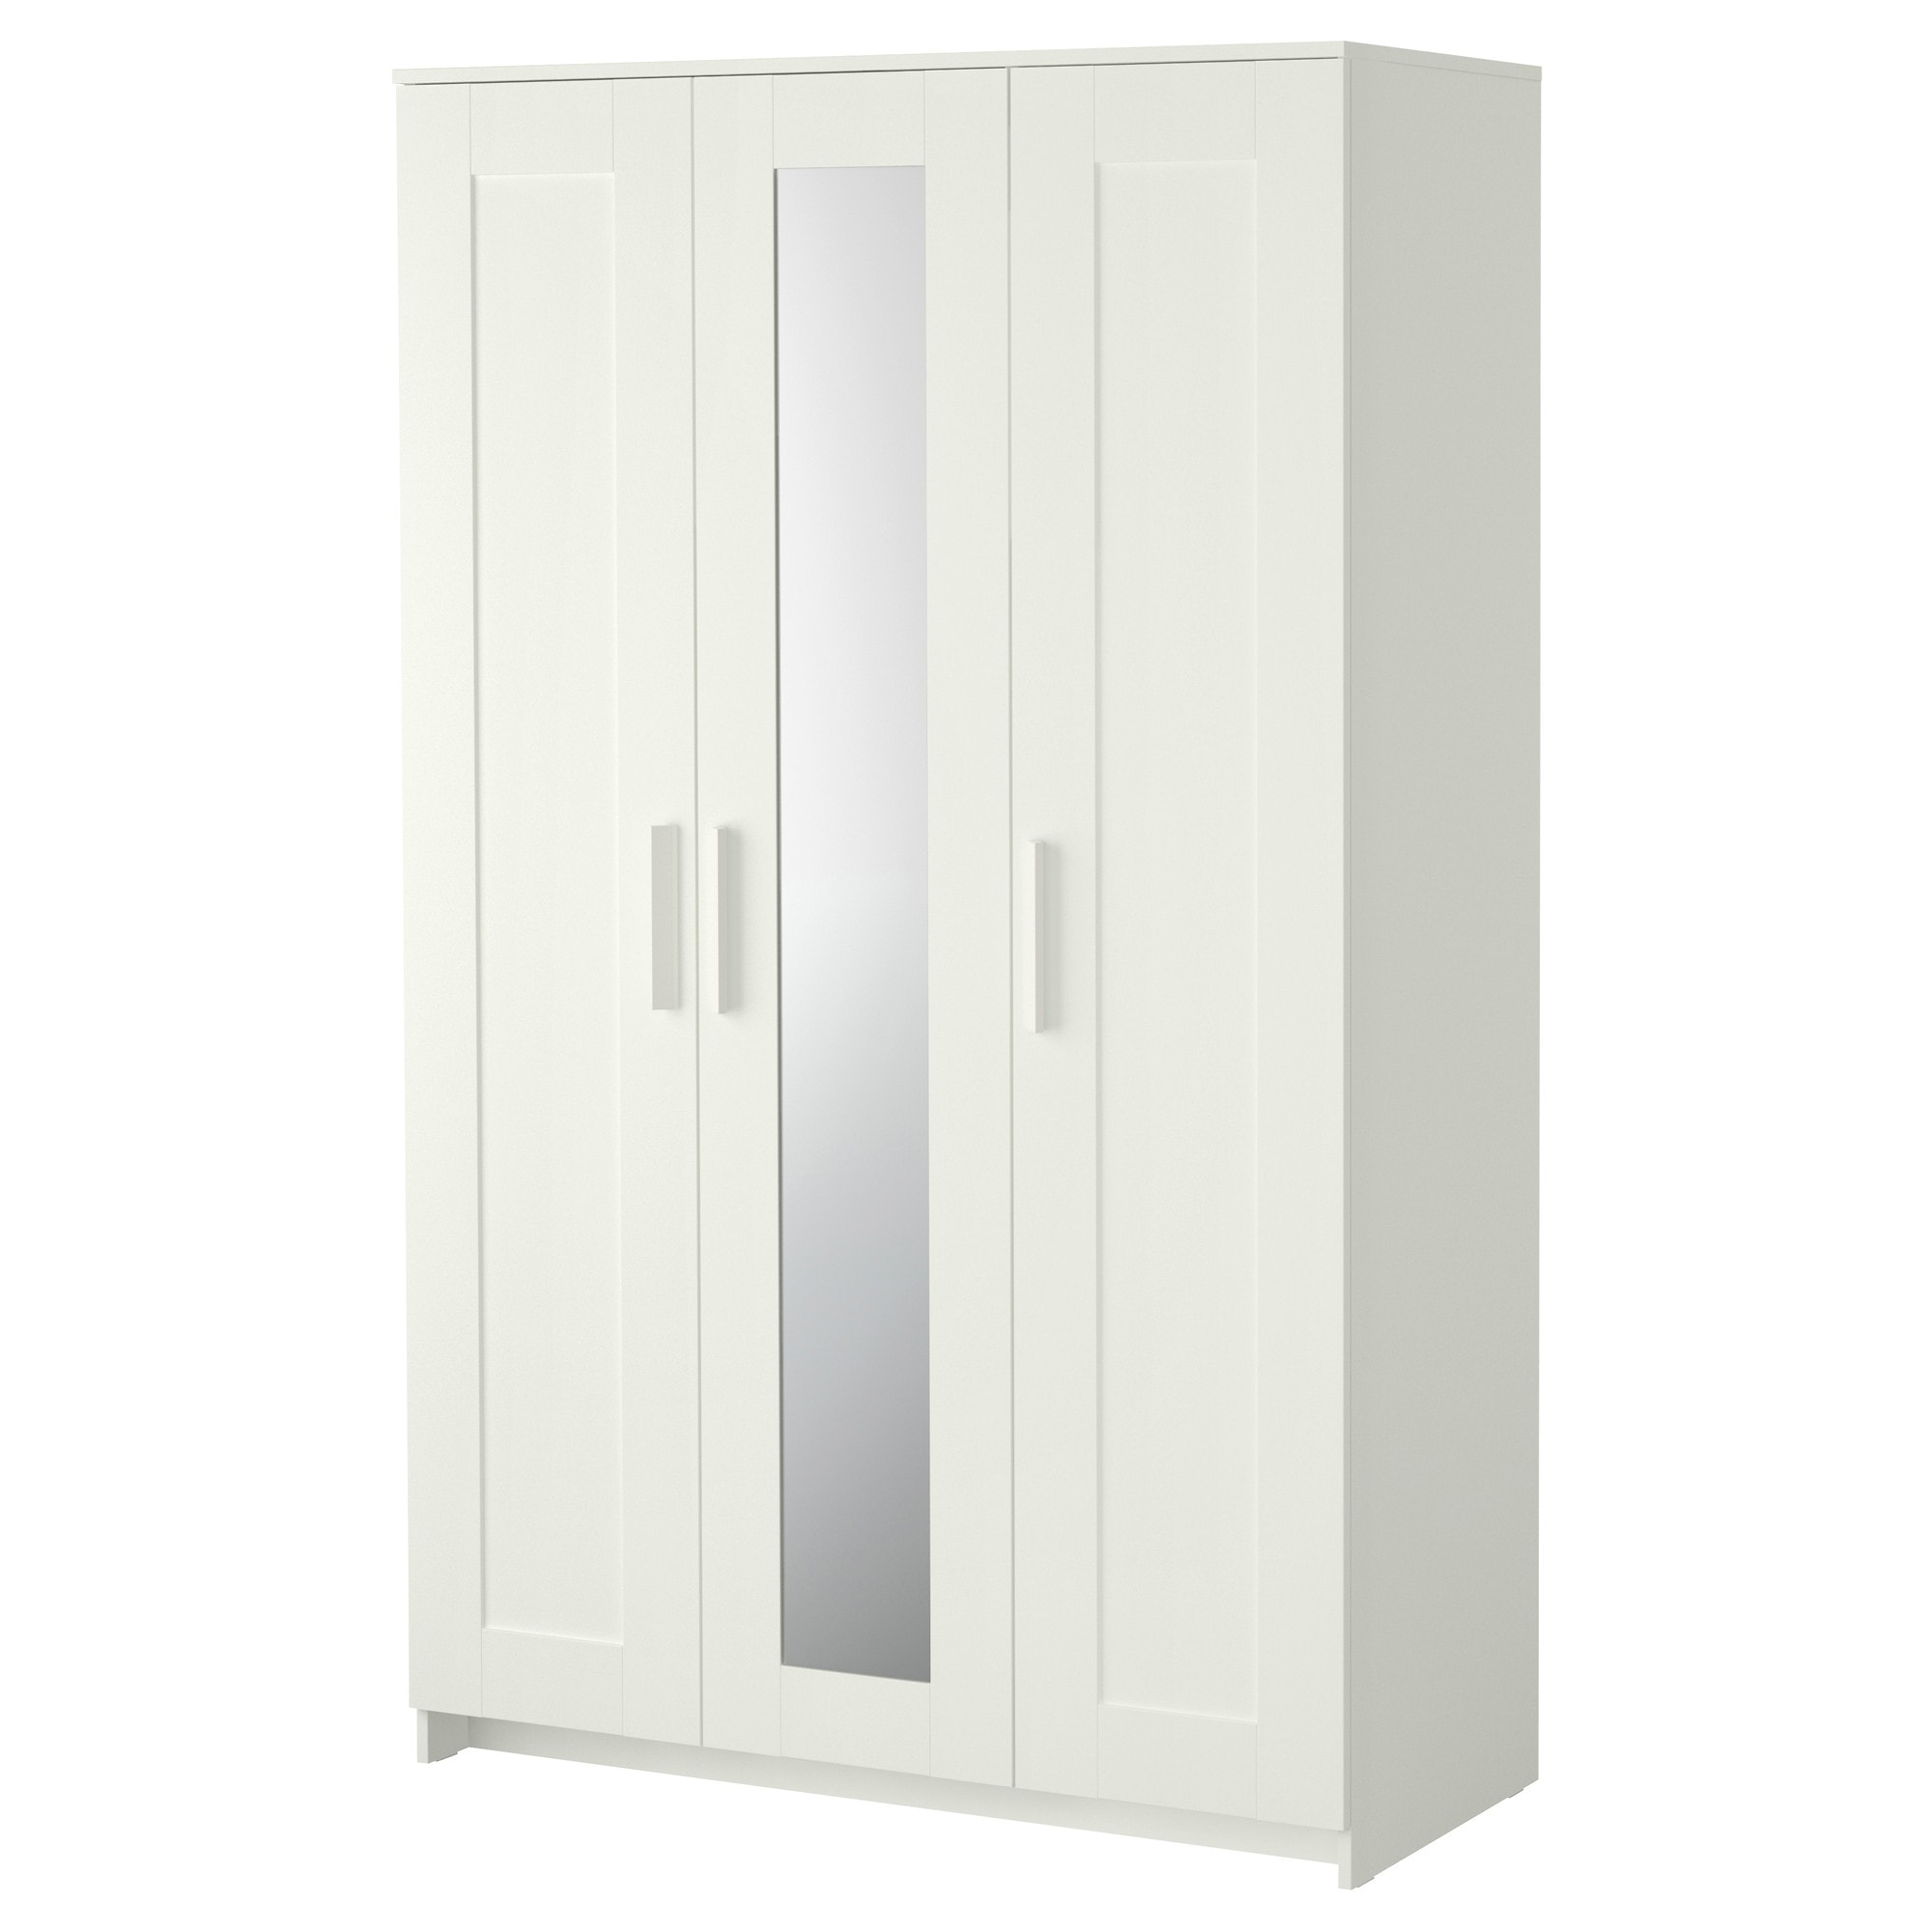 Awesome Armoire 4 Portes Ikea #7: BRIMNES Wardrobe With 3 Doors - White - IKEA